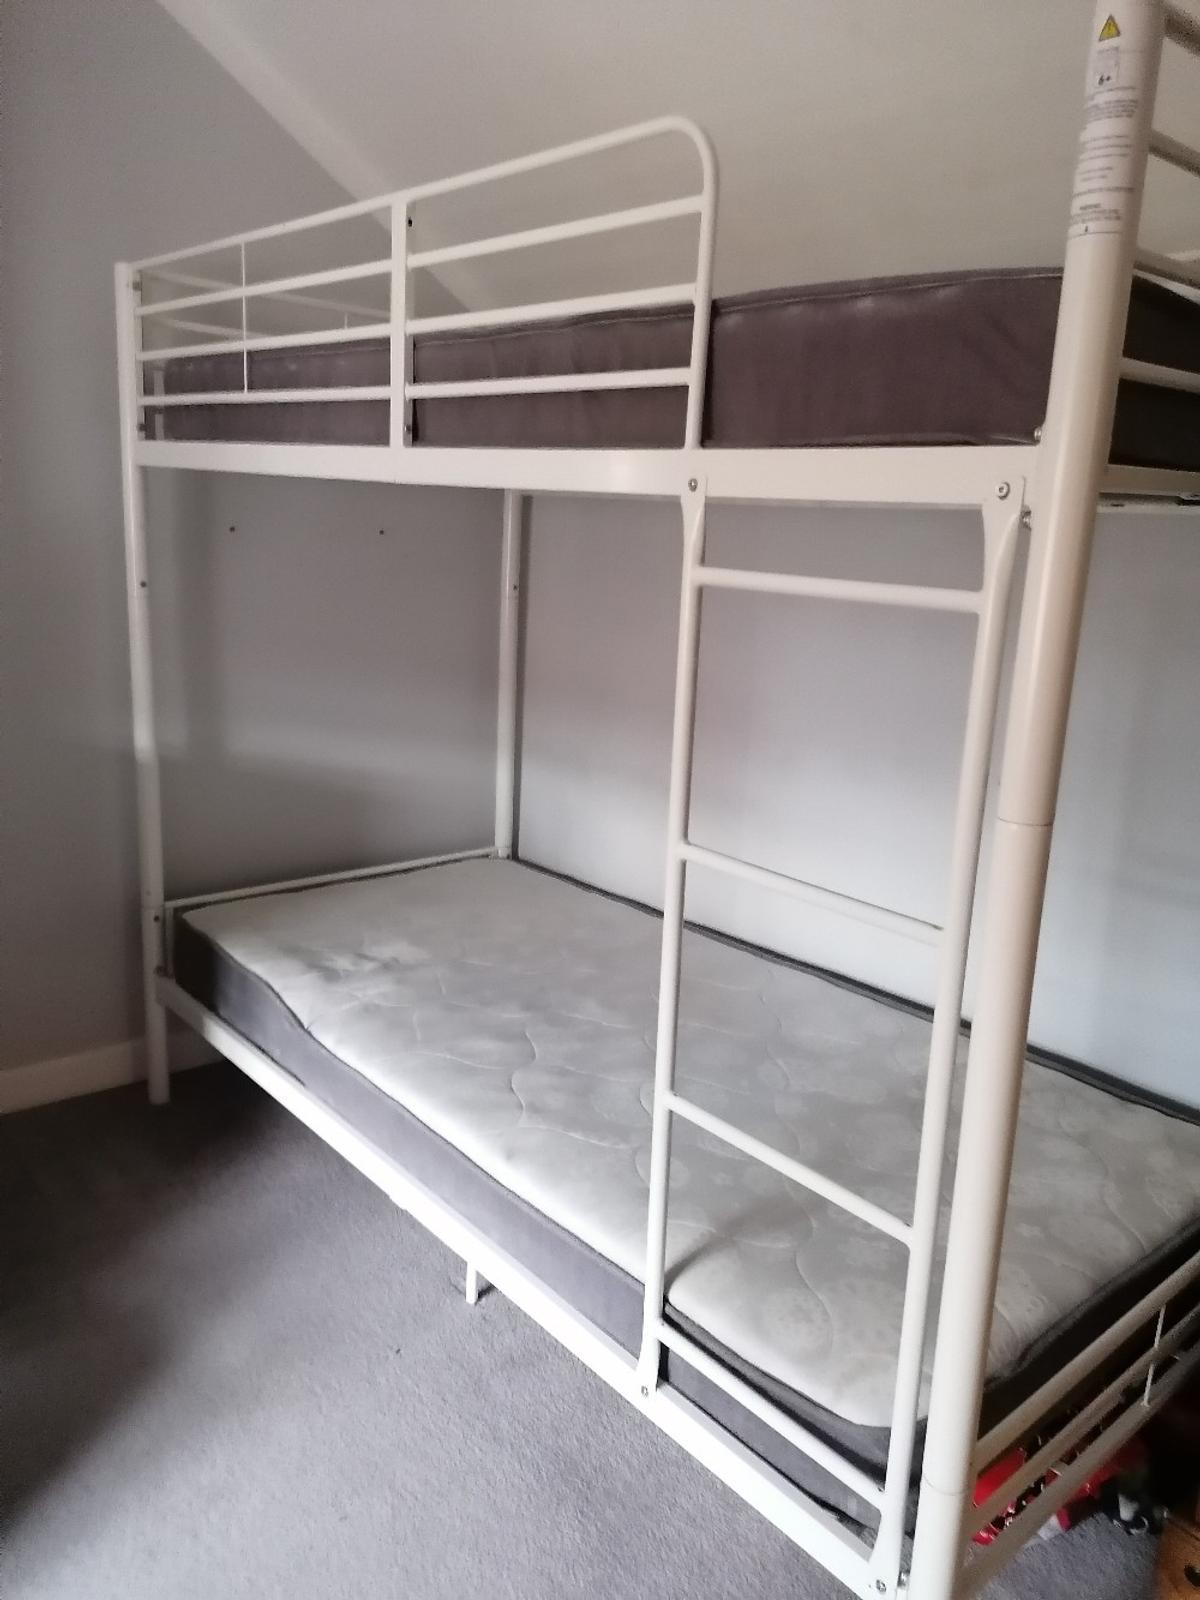 Picture of: Cream Metal Bunk Beds In Pe11 Holland For 50 00 For Sale Shpock